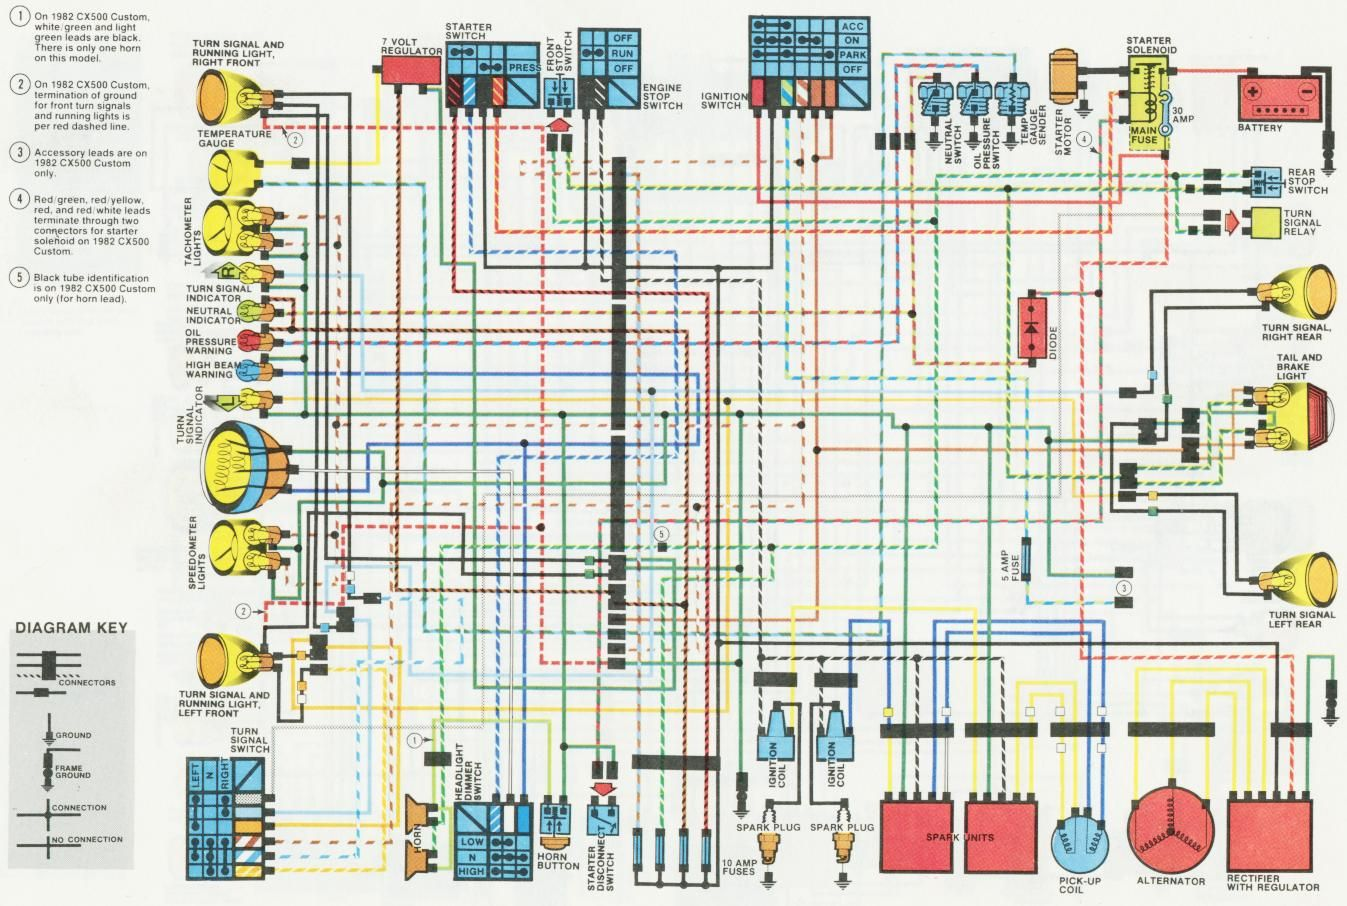 Gl1800 Fuse Diagram Great Installation Of Wiring Honda Goldwing Accessory Box 1800 Diagrams Source Rh 3 17 7 Ludwiglab De